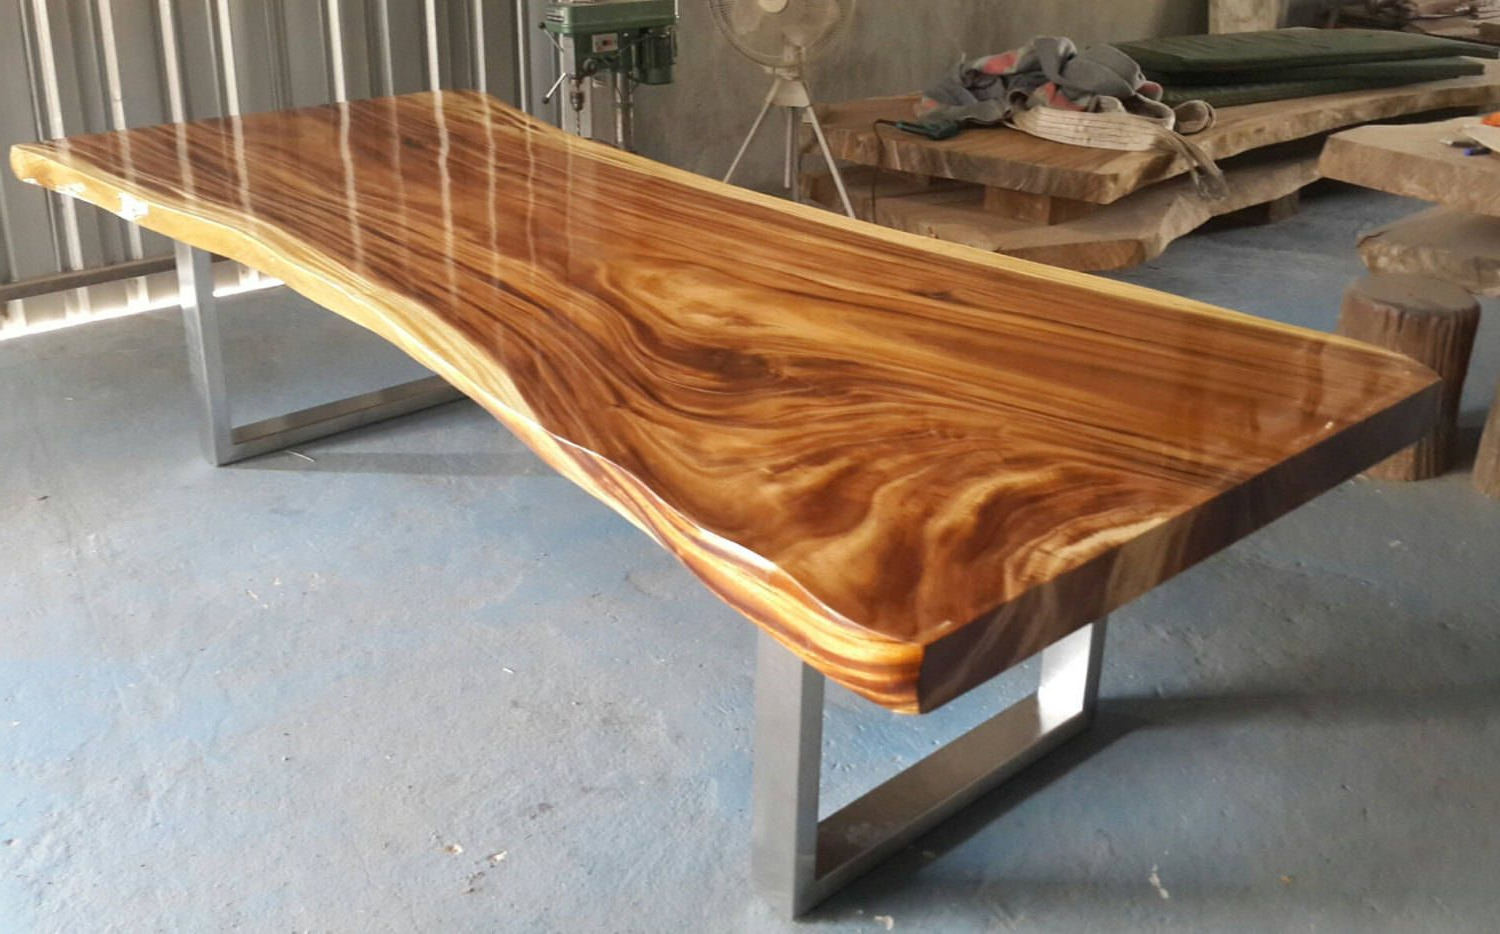 Live Edge Dining Table Golden Acacia Wood Reclaimed Single Pertaining To 2019 Acacia Dining Tables With Black X Legs (View 20 of 25)